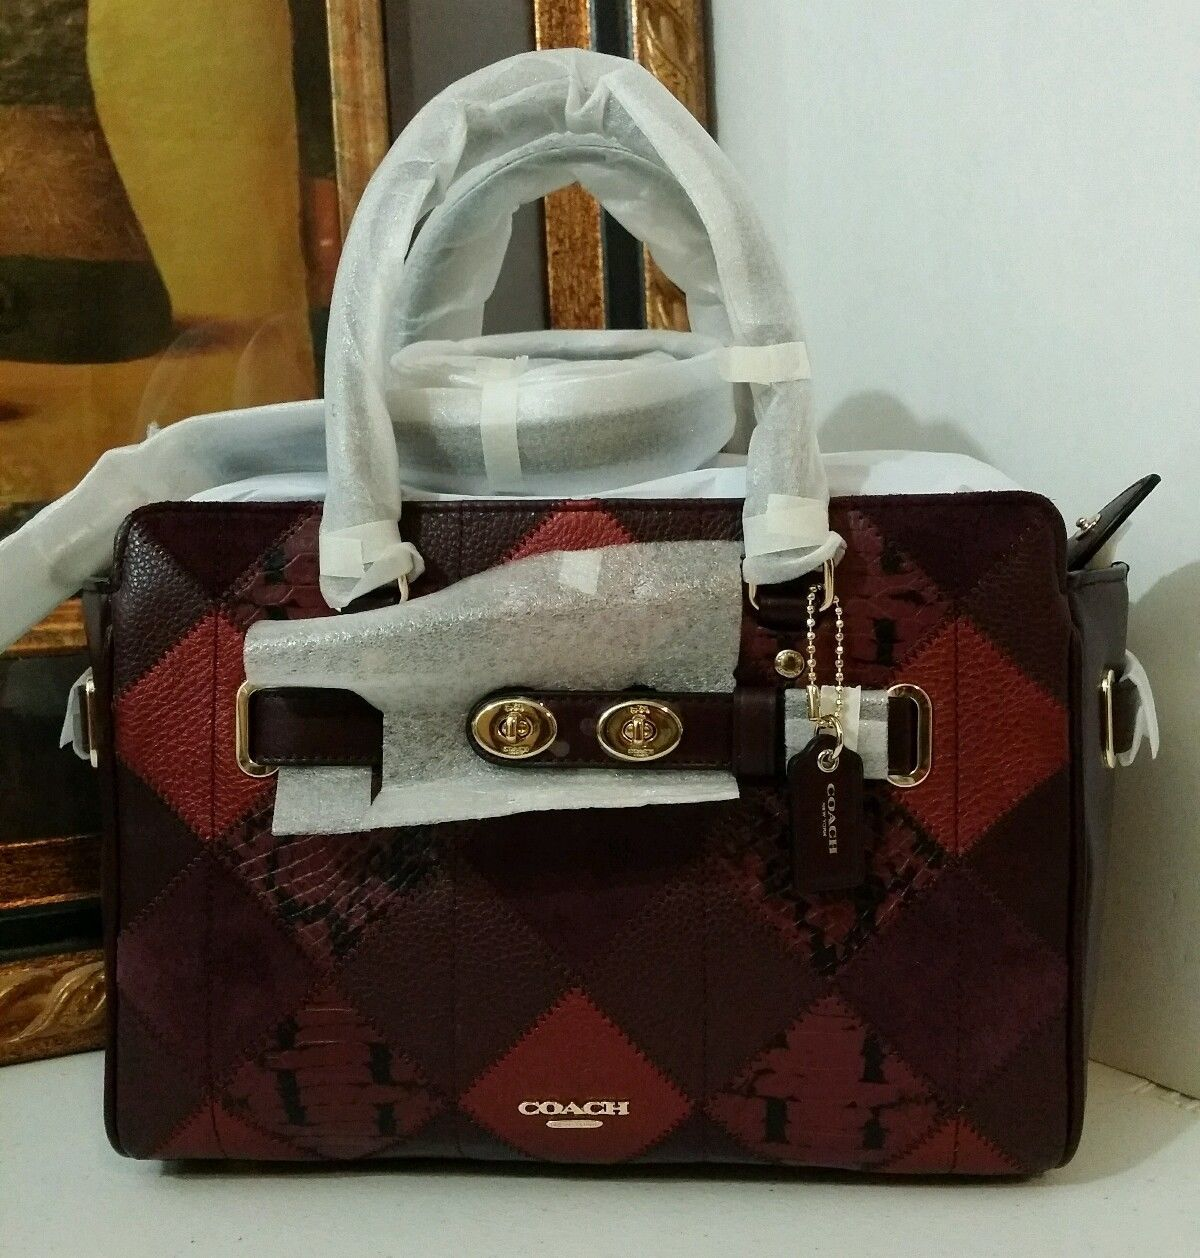 NWT COACH BLAKE CARRYALL 25 IN METALLIC PATCHWORK LEATHER F55666 METALLIC CHERRY